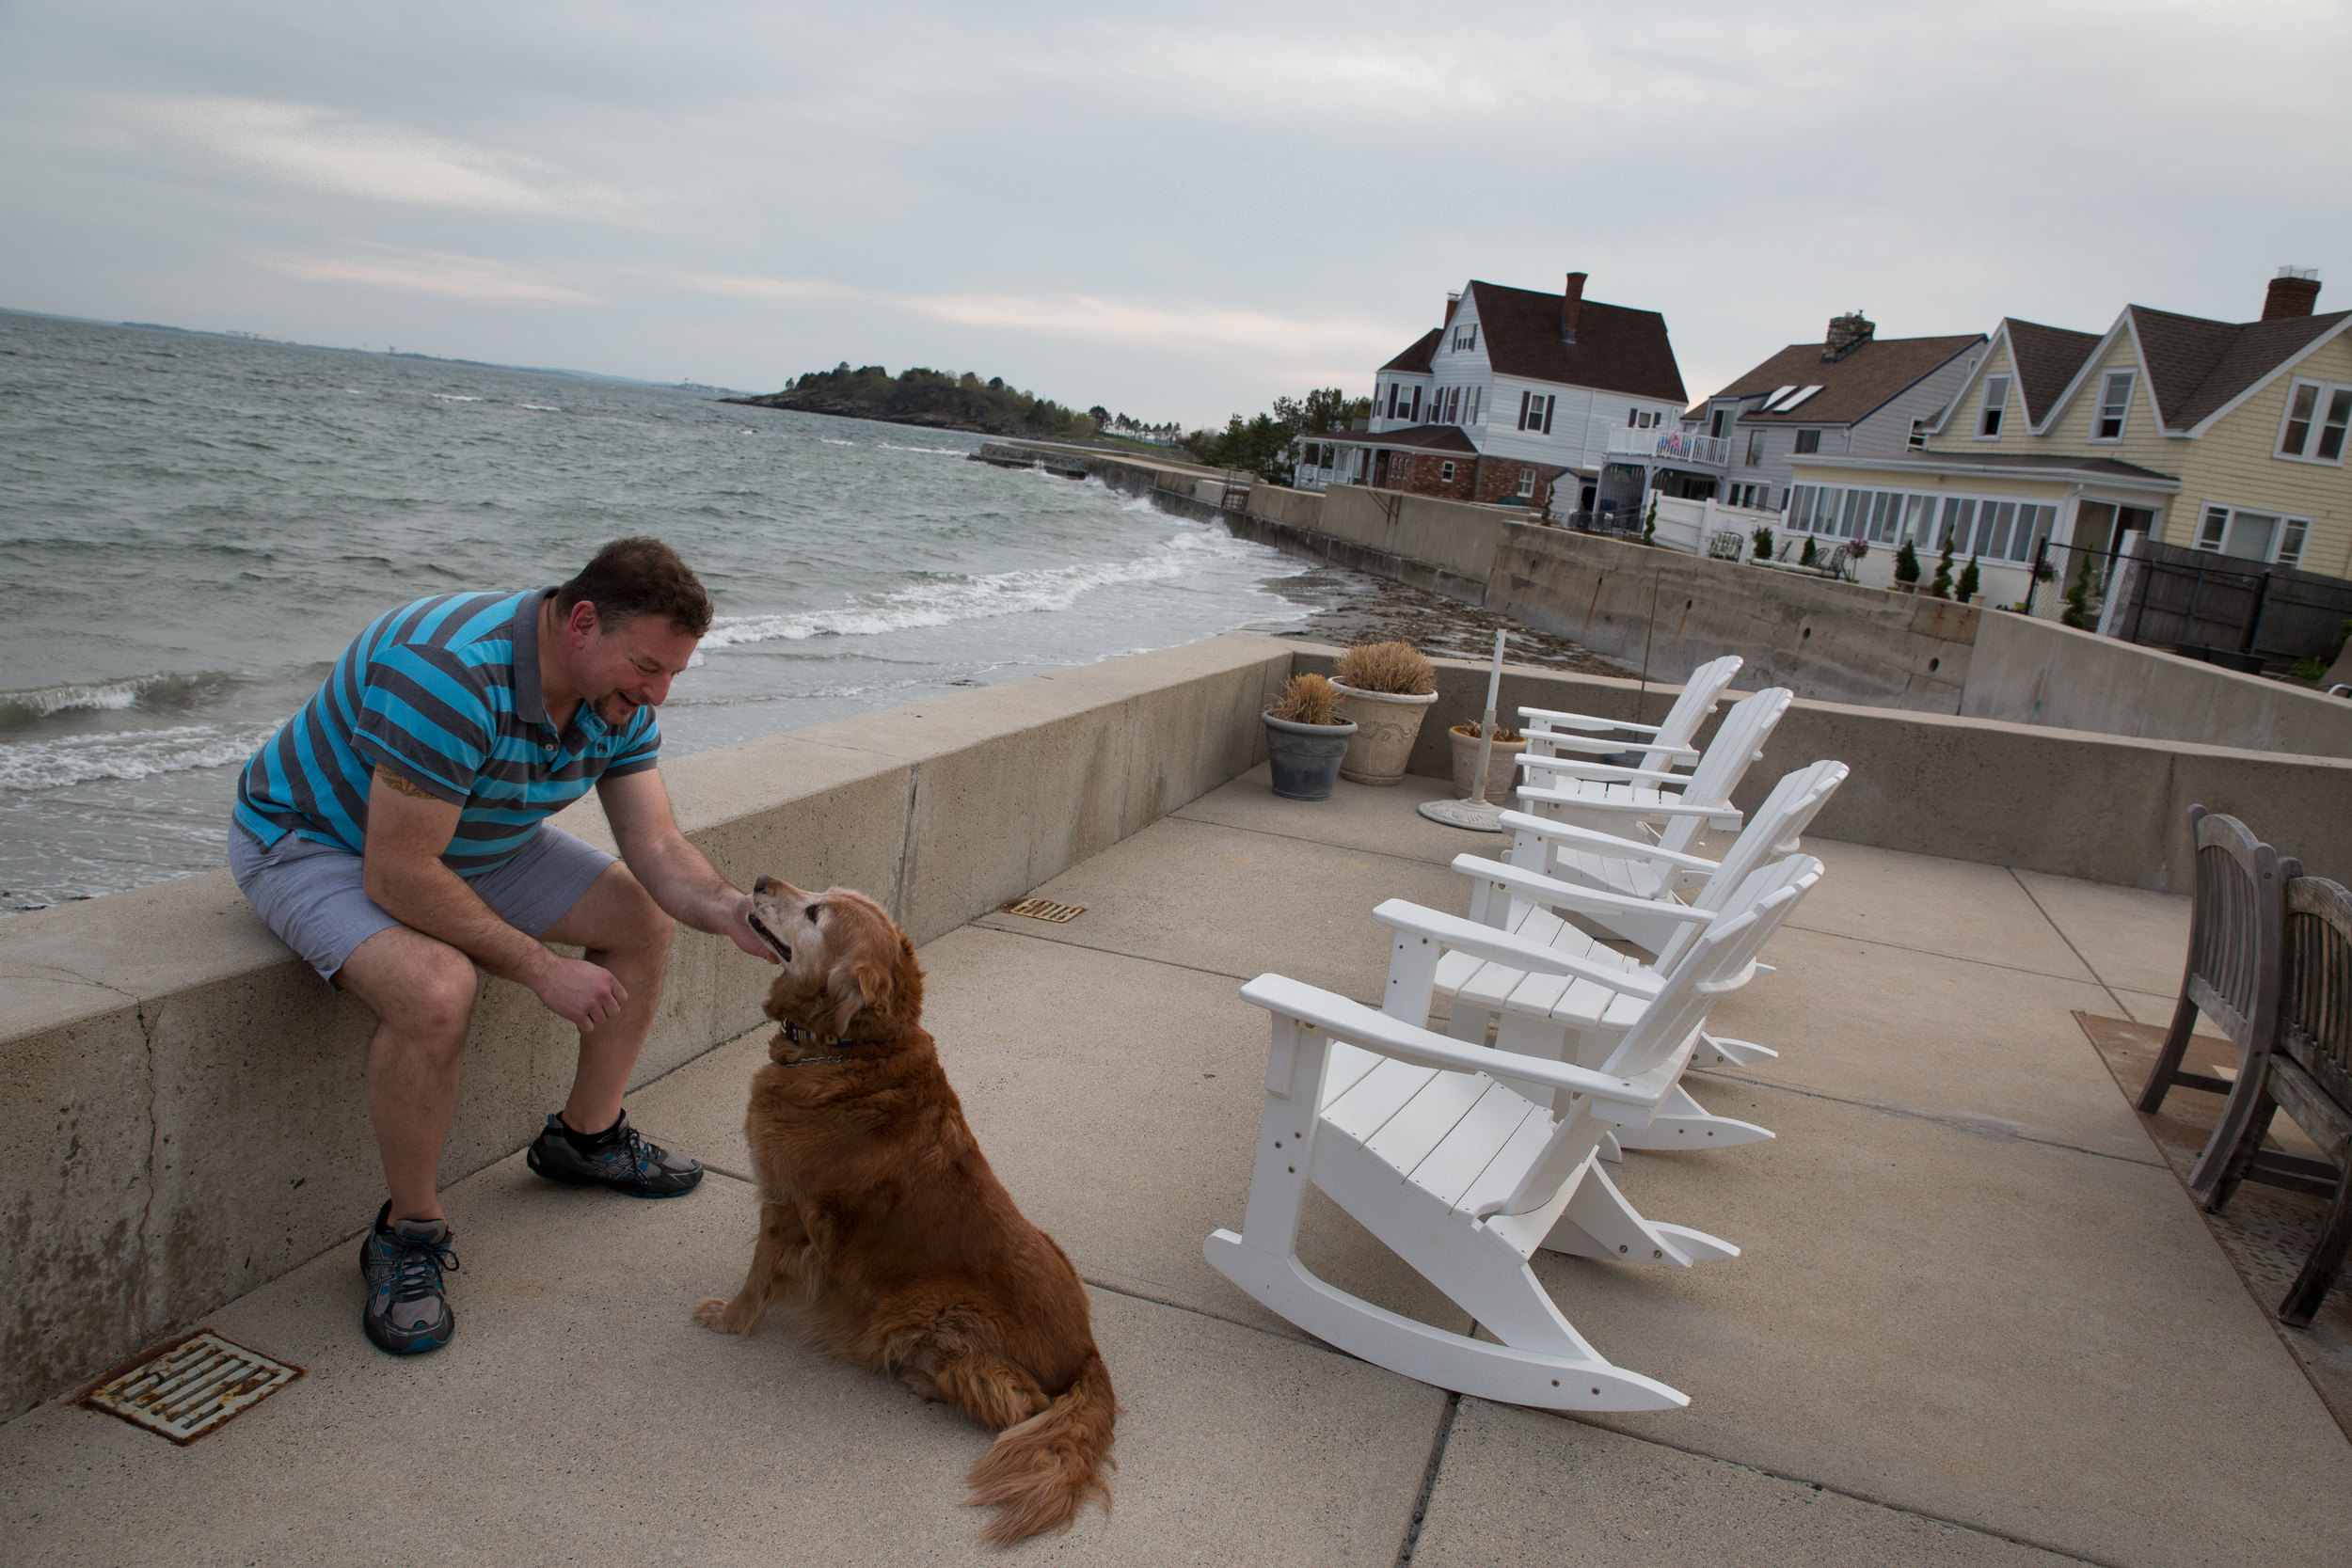 When he was first on the market for a home,Ken Carangelo didn't think he was interested in living right on the water. Now he says he's constantly weighing the risks of rising seas against the enjoyment he gets from living on the water.